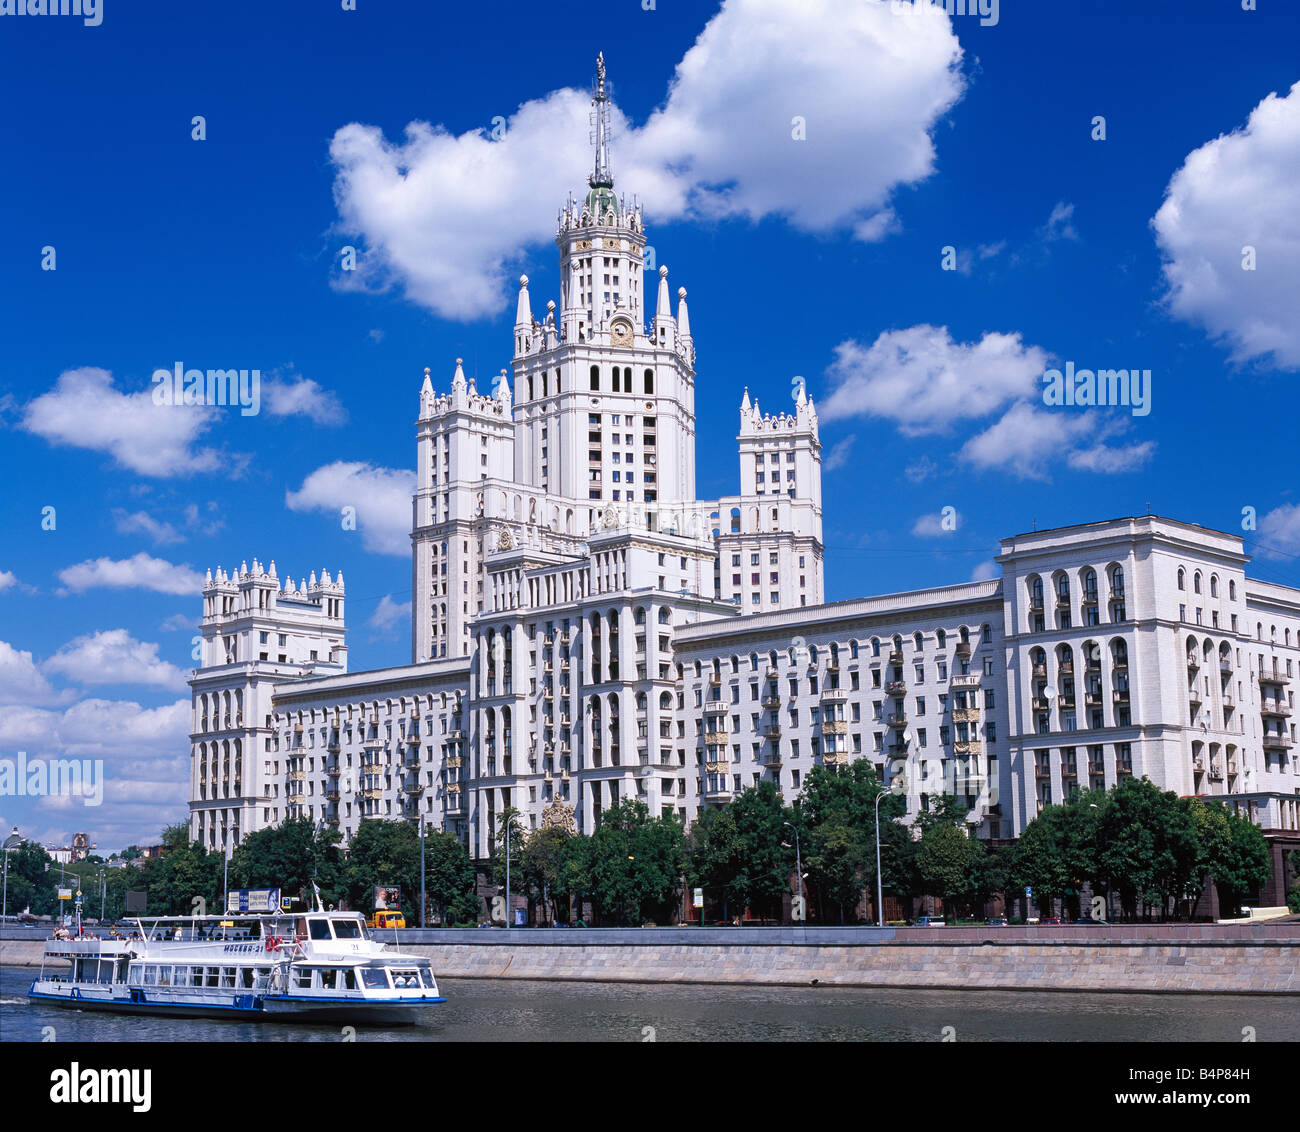 Kotelnicheskaya Embankment Building is one of seven stalinist skyscrapers in Moscow - Stock Image